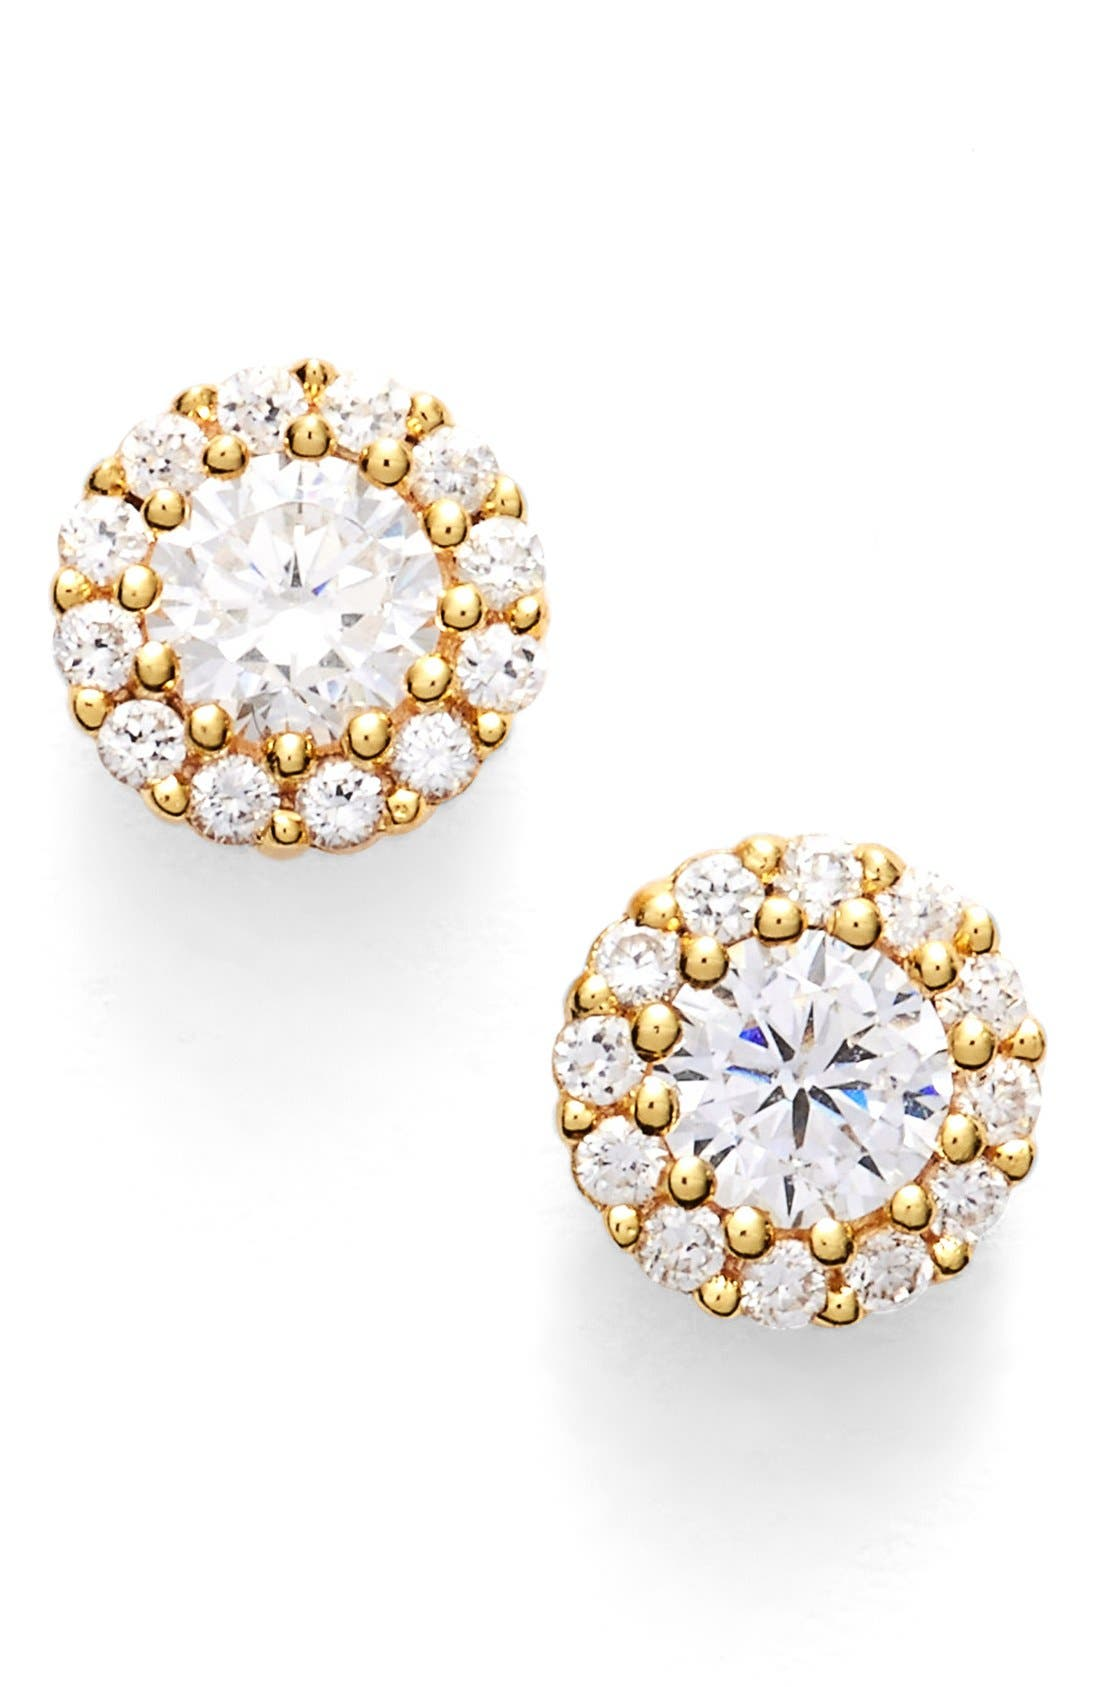 Precious Metal Plated Cubic Zirconia Stud Earrings,                         Main,                         color, Gold